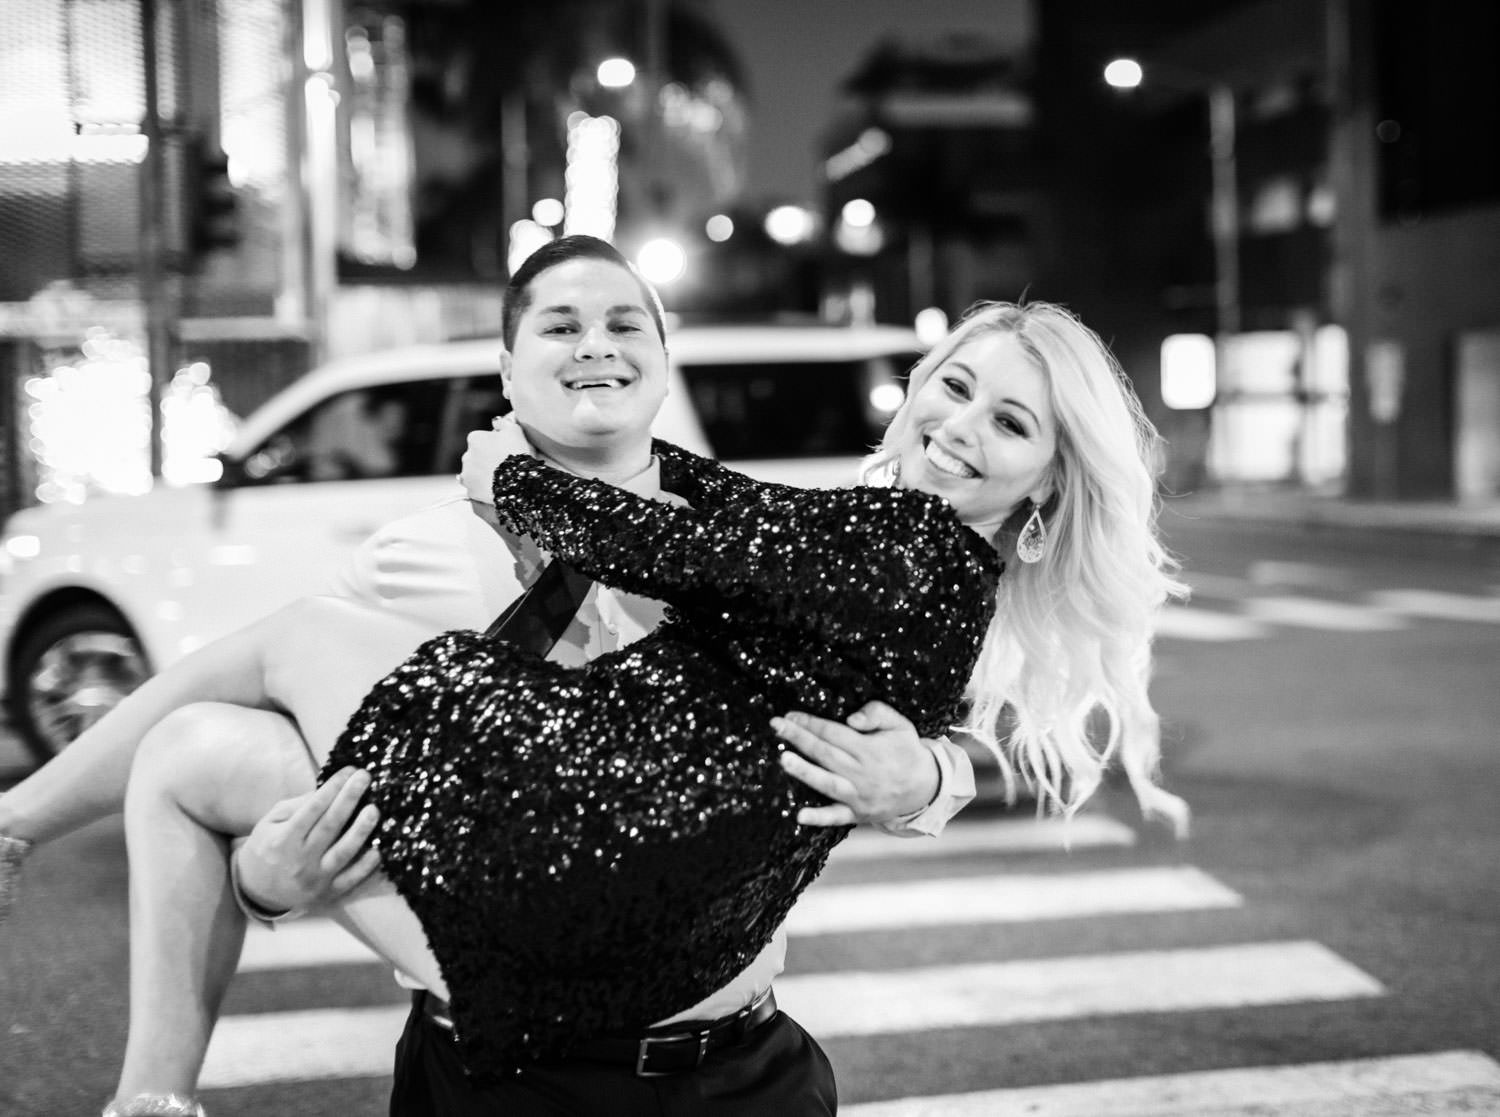 Groom carrying bride across the street at night, Beverly Hills downtown Engagement Photos by Cavin Elizabeth Photography